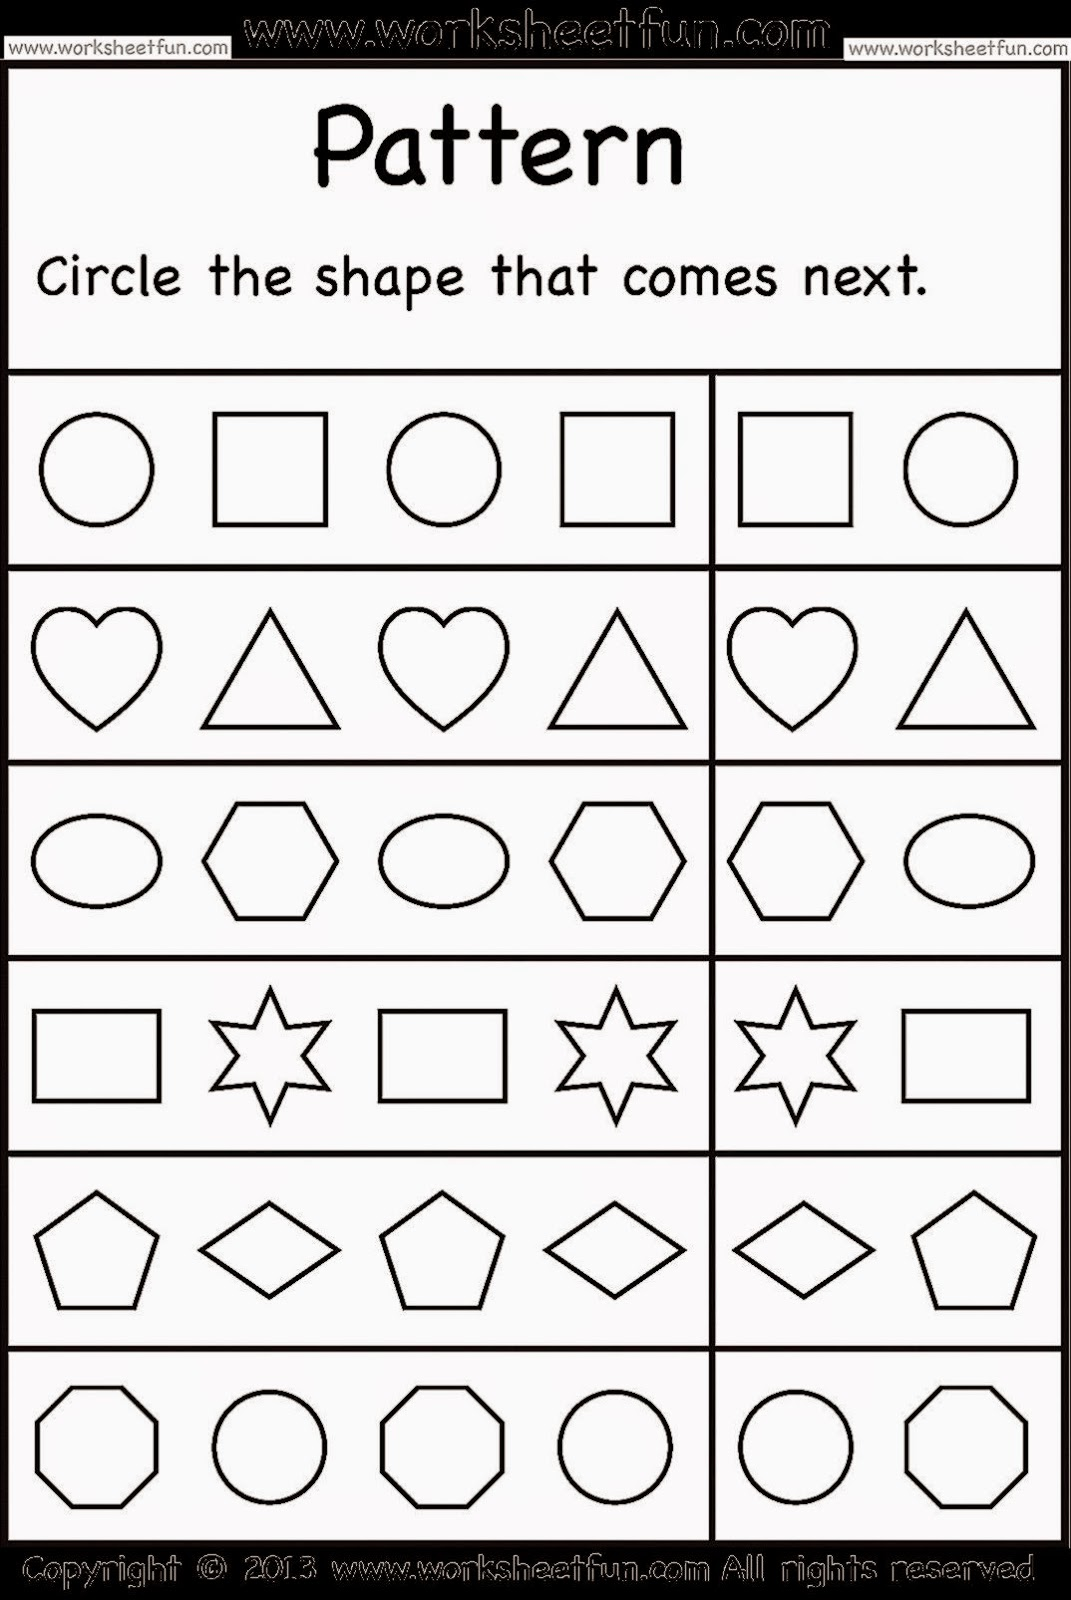 Kindergarten Worksheets Printable – Kindergarten Worksheets Printable Free